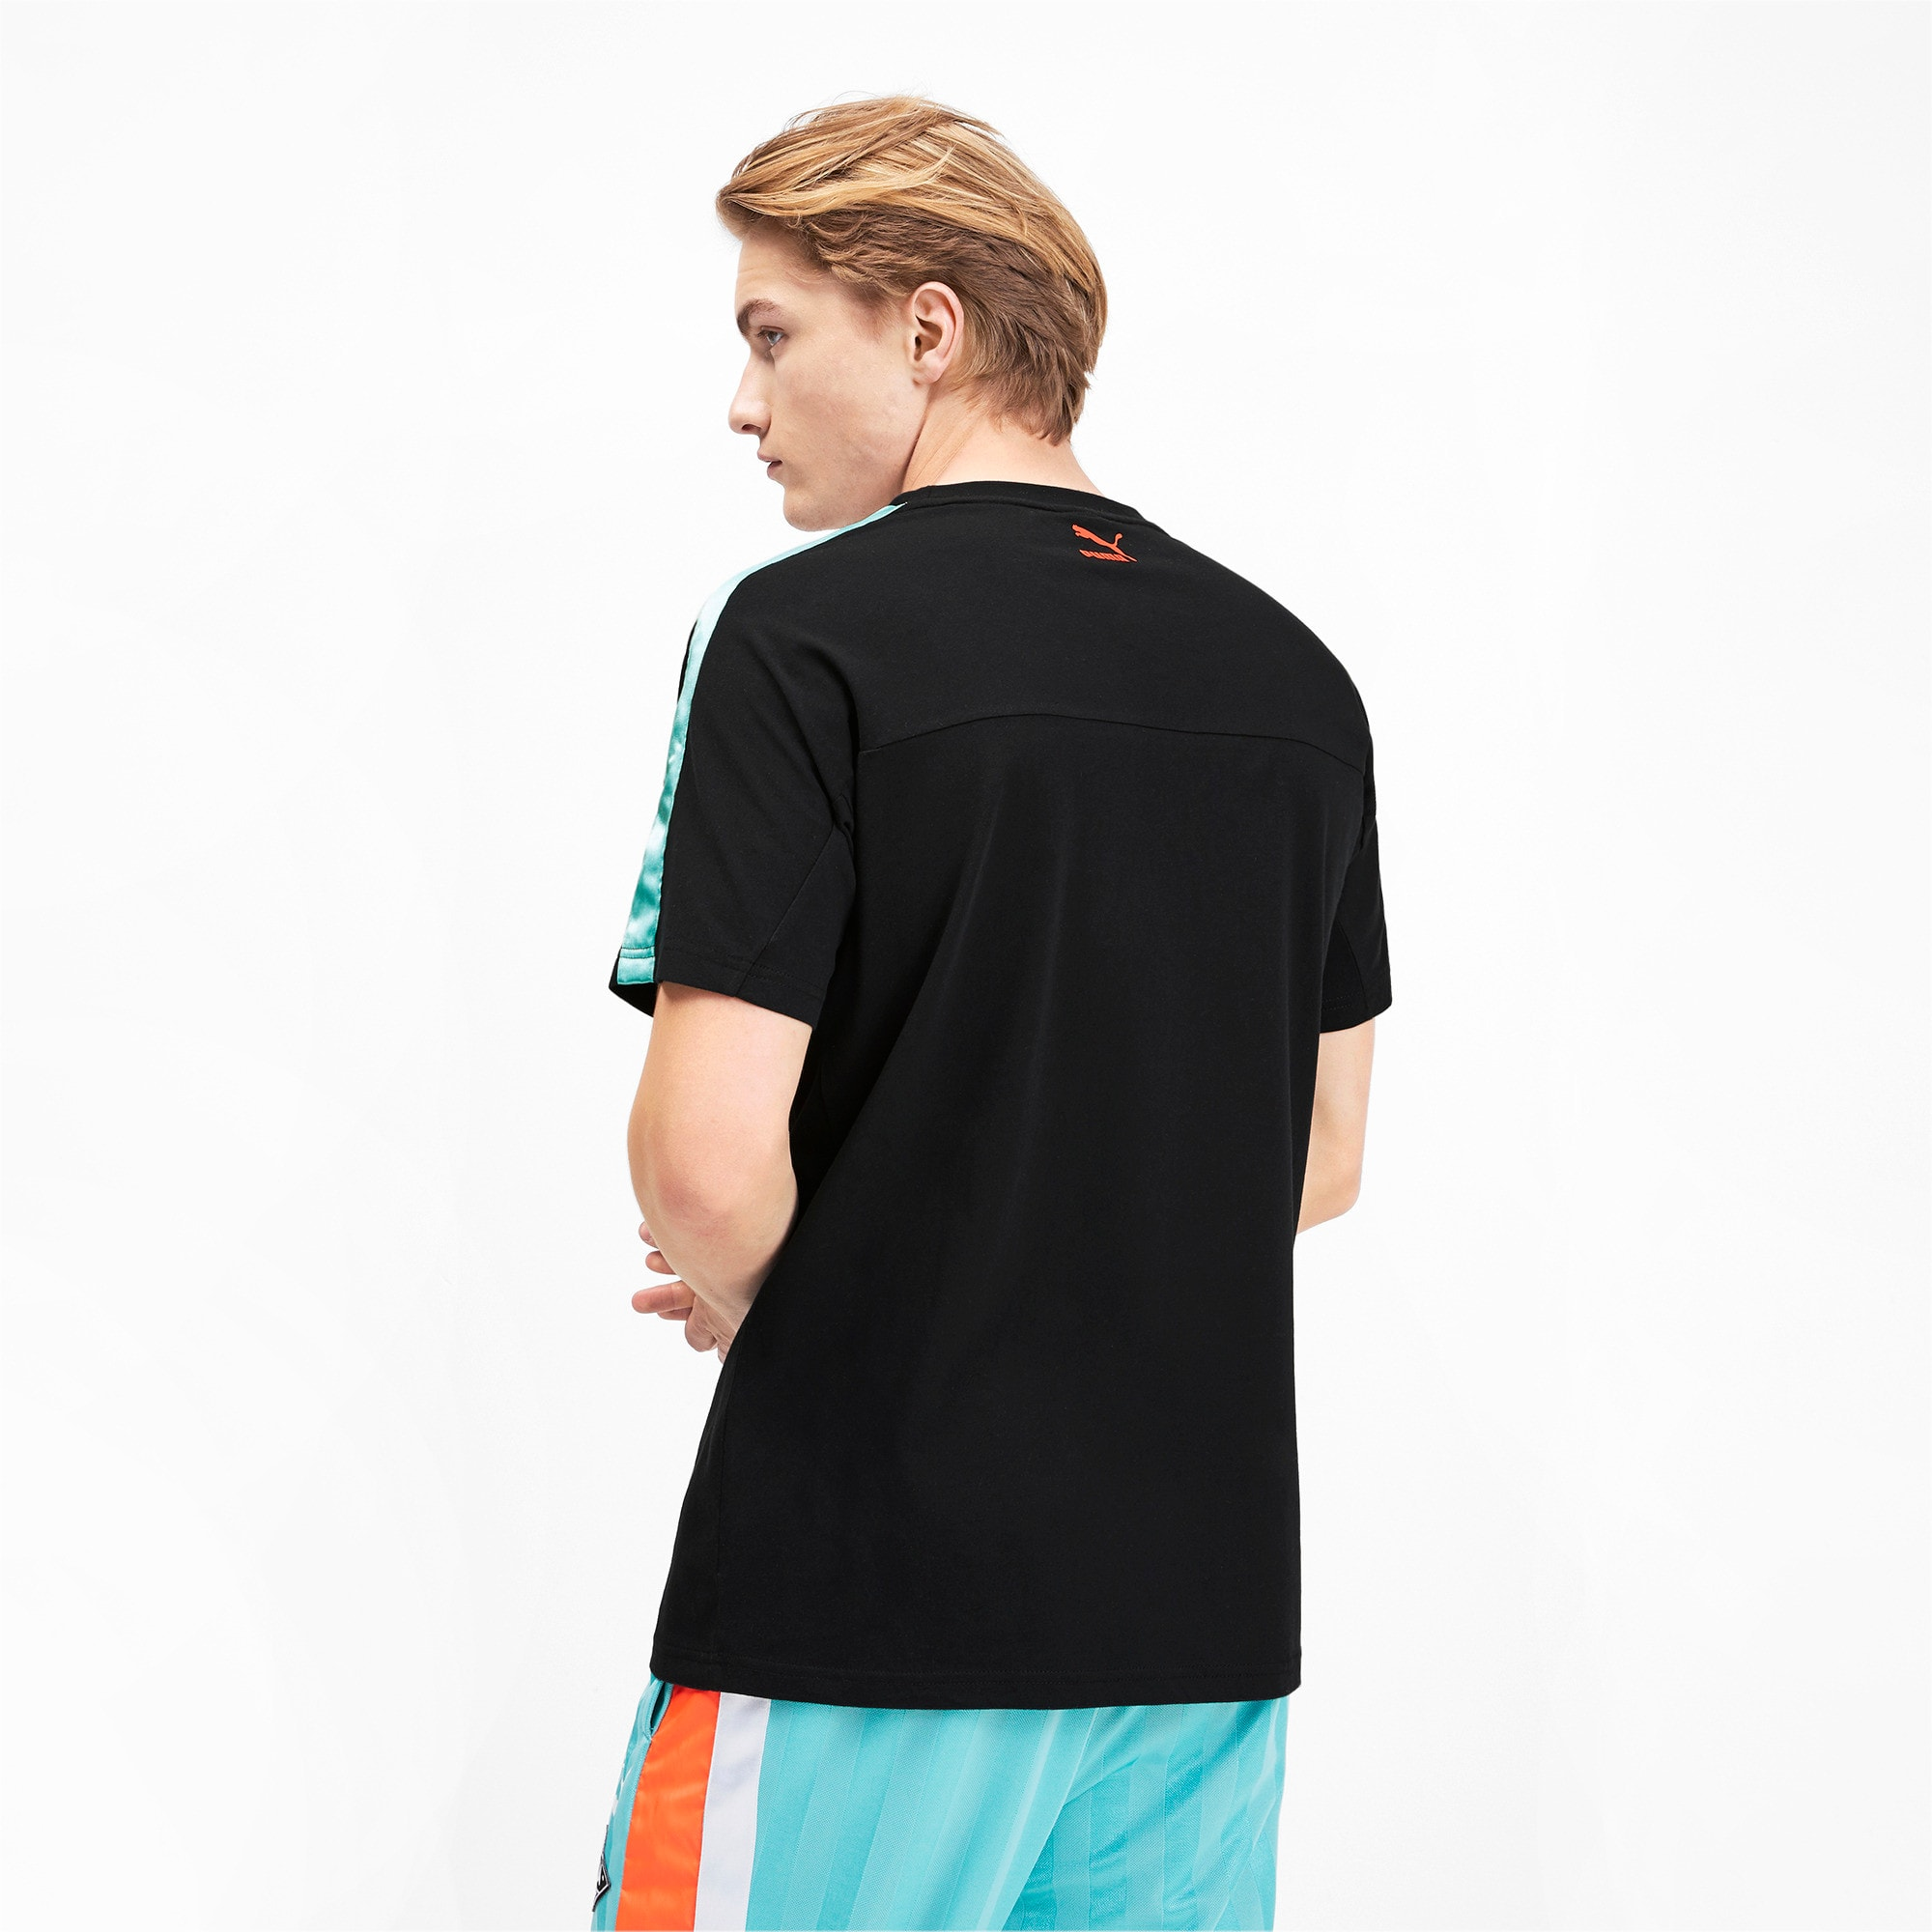 Thumbnail 2 of luXTG Men's Tee, Puma Black, medium